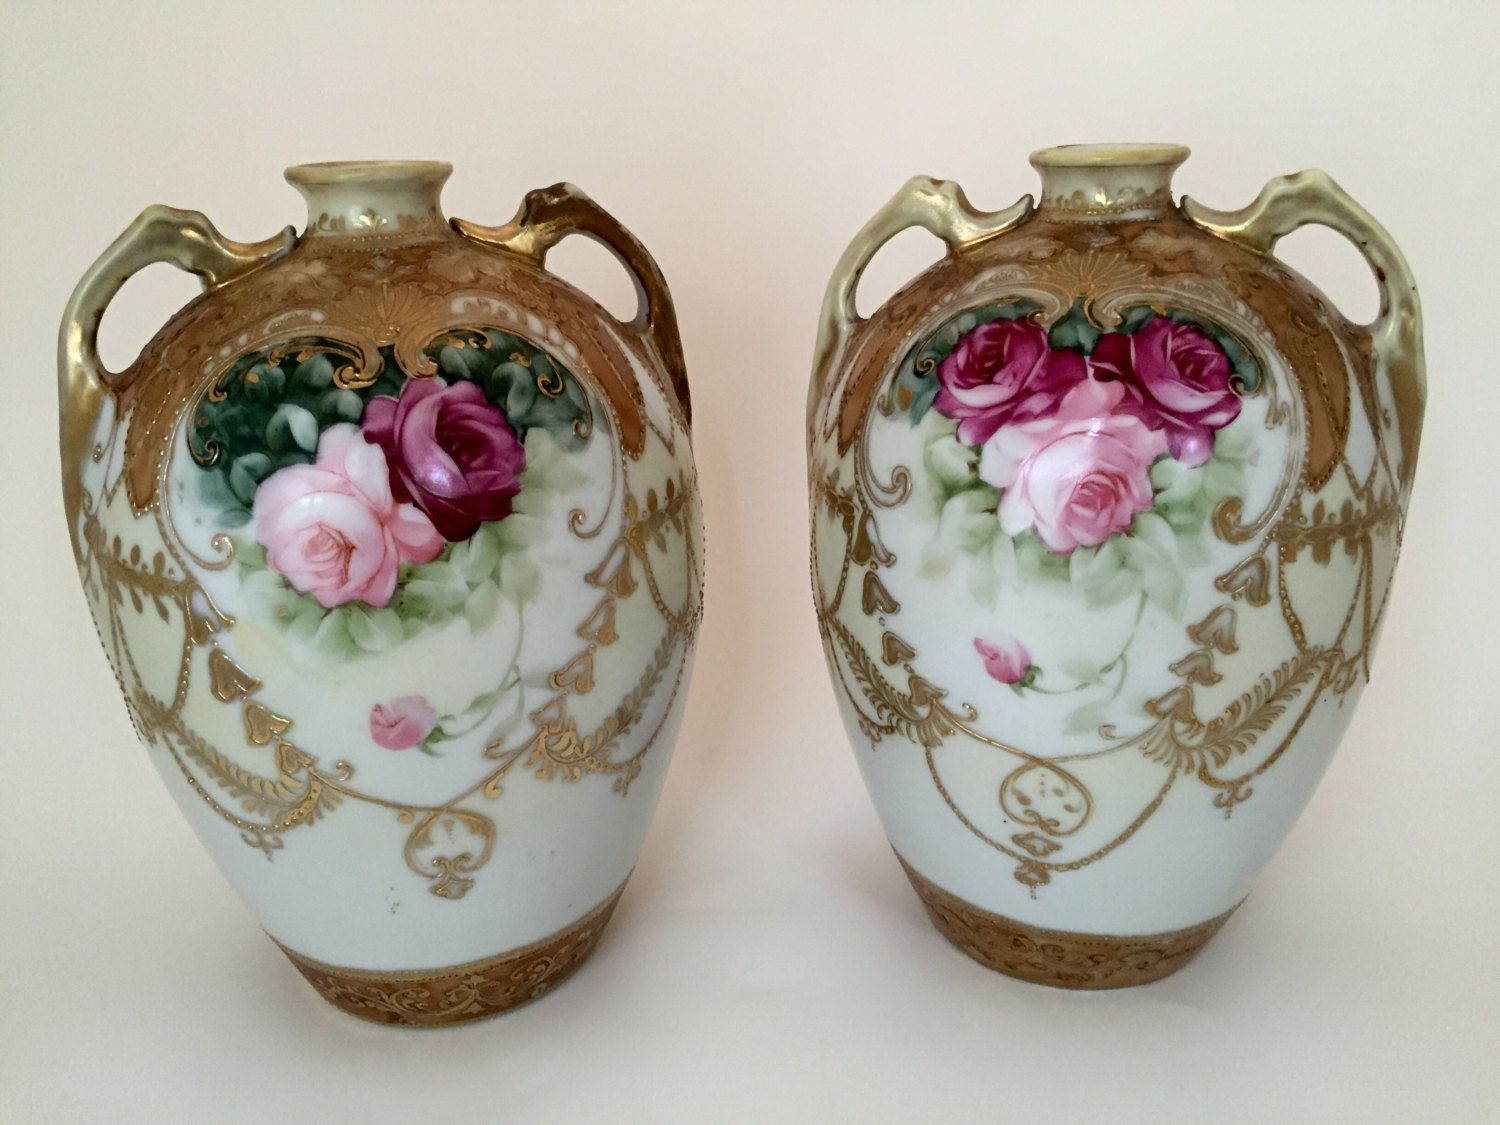 Dating hand painted nippon